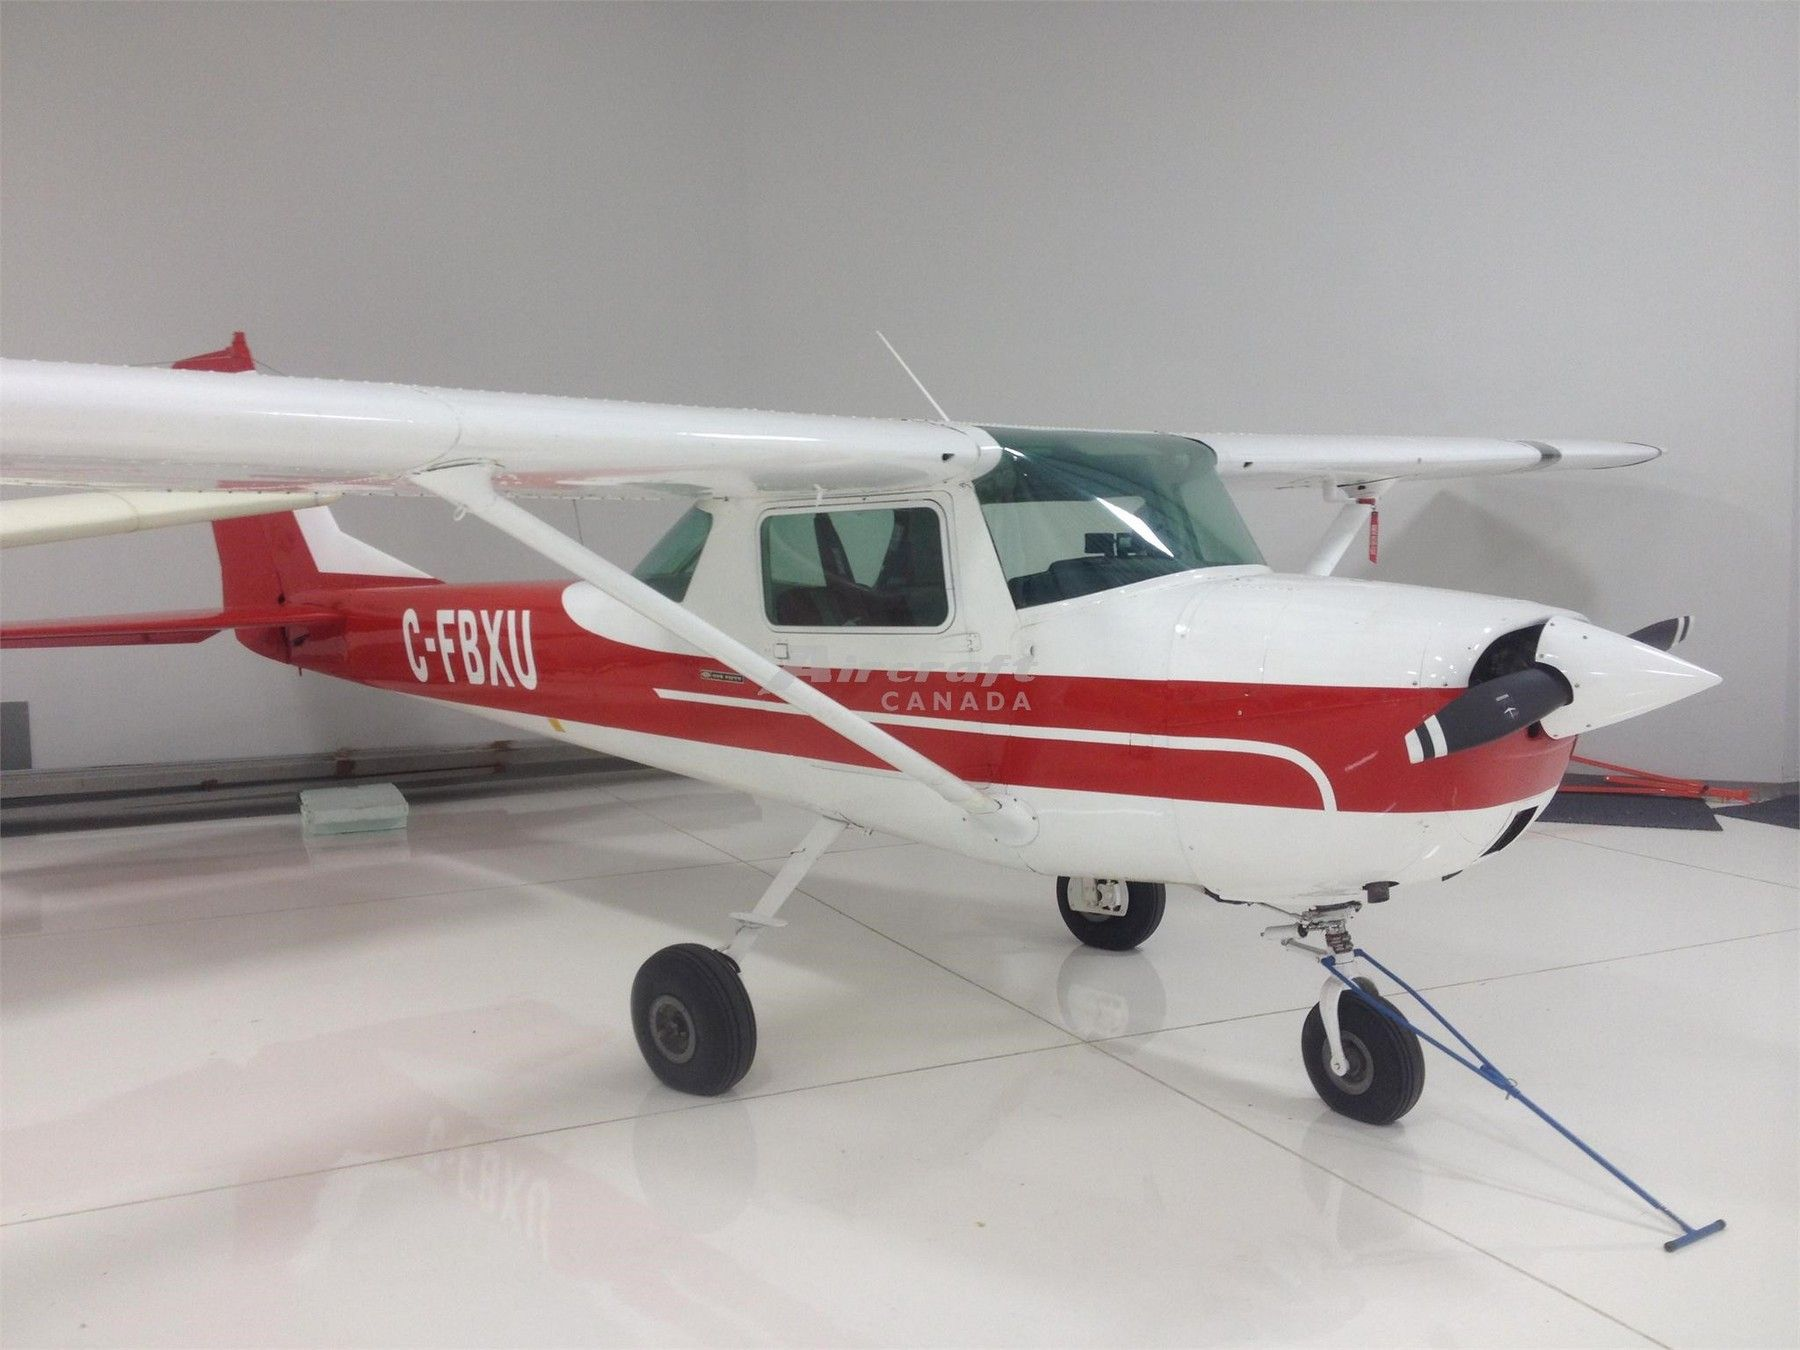 1967 Cessna 150 for sale in Calgary, AB Canada => http